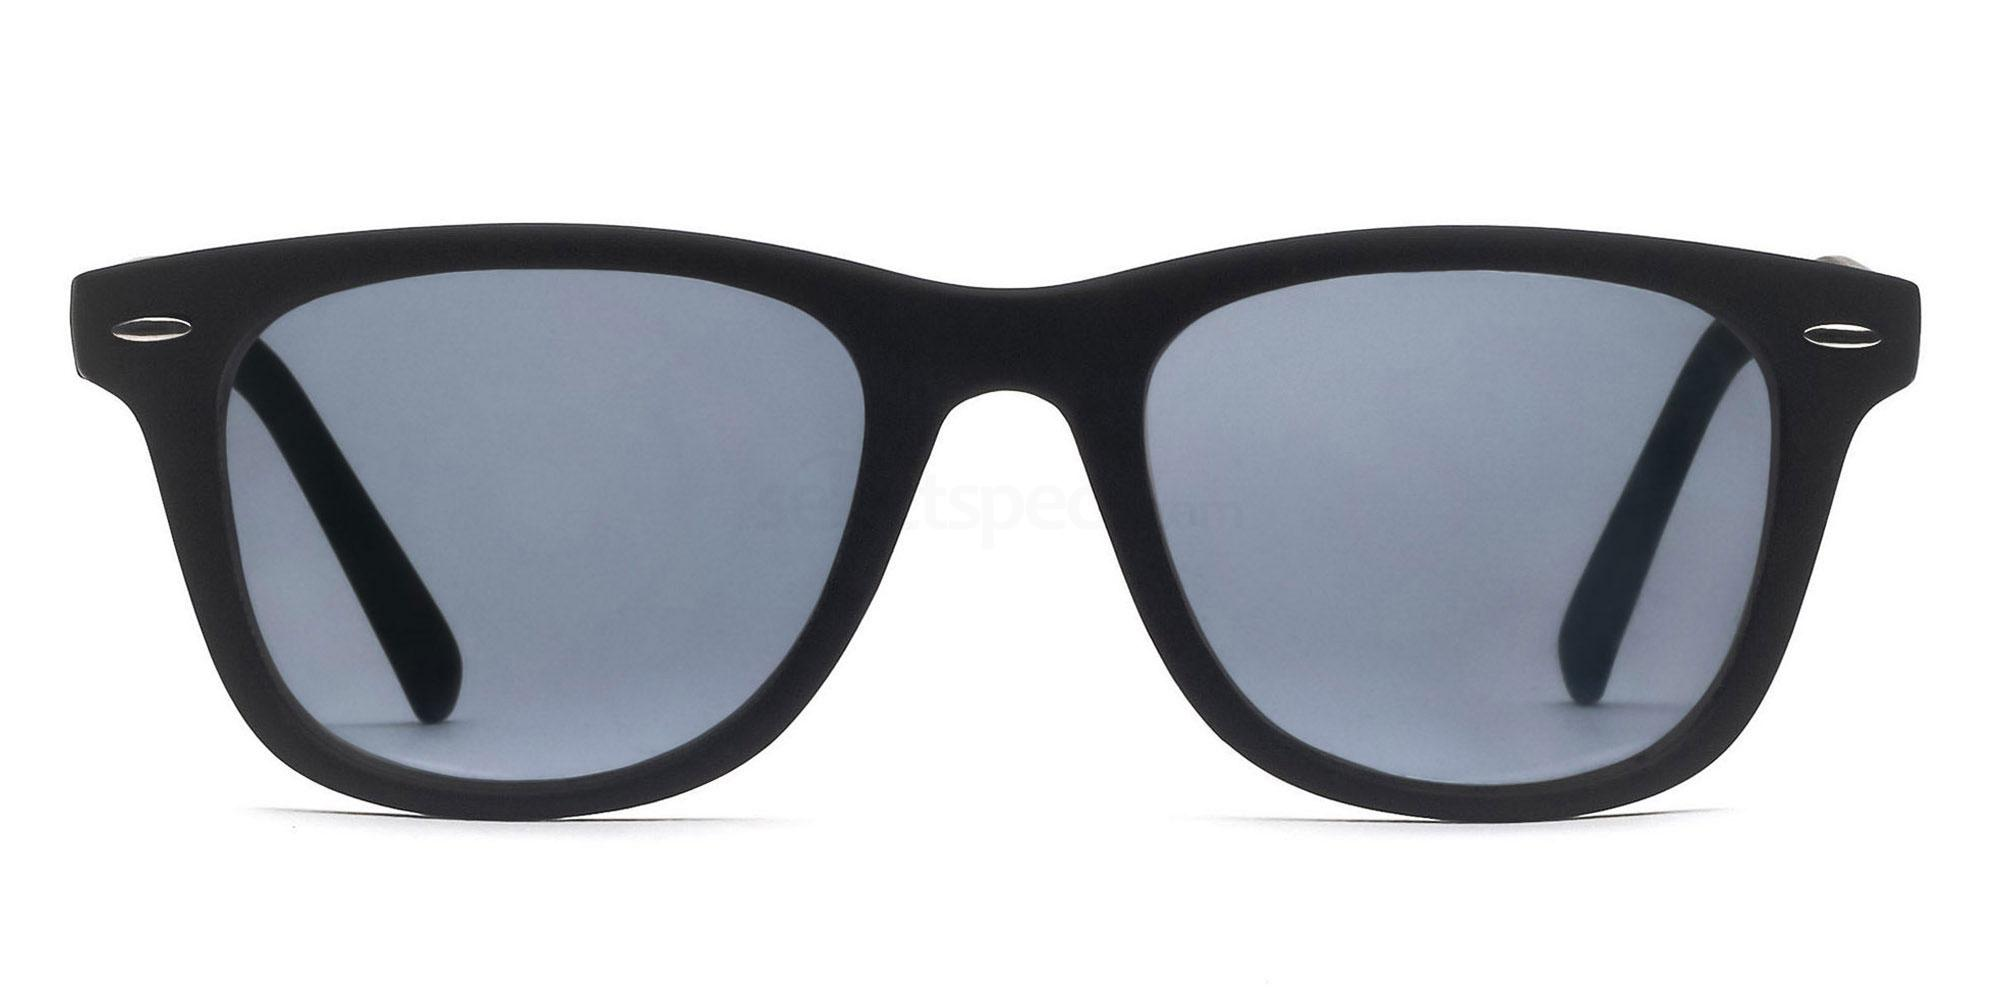 Savannah 8121 - Black (Sunglasses)